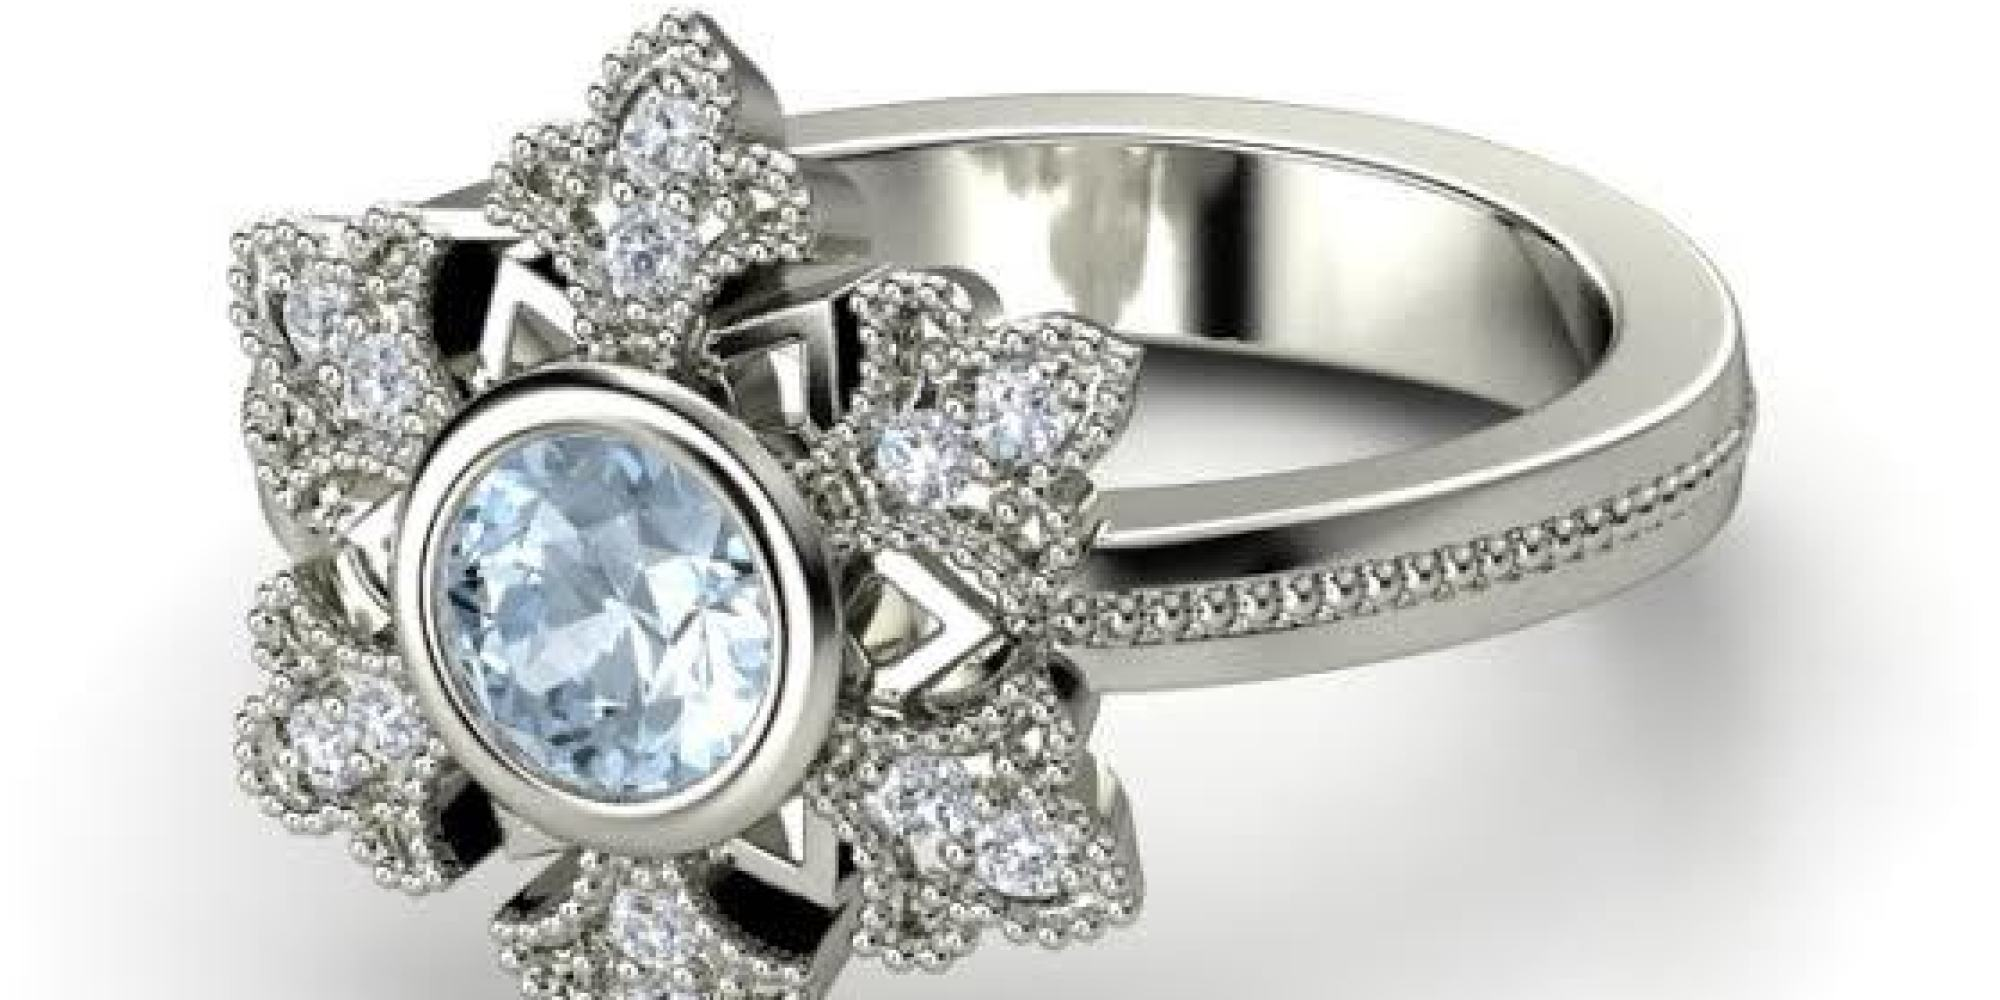 These Frozen Inspired Engagement Rings Are For Diehard Fans Only